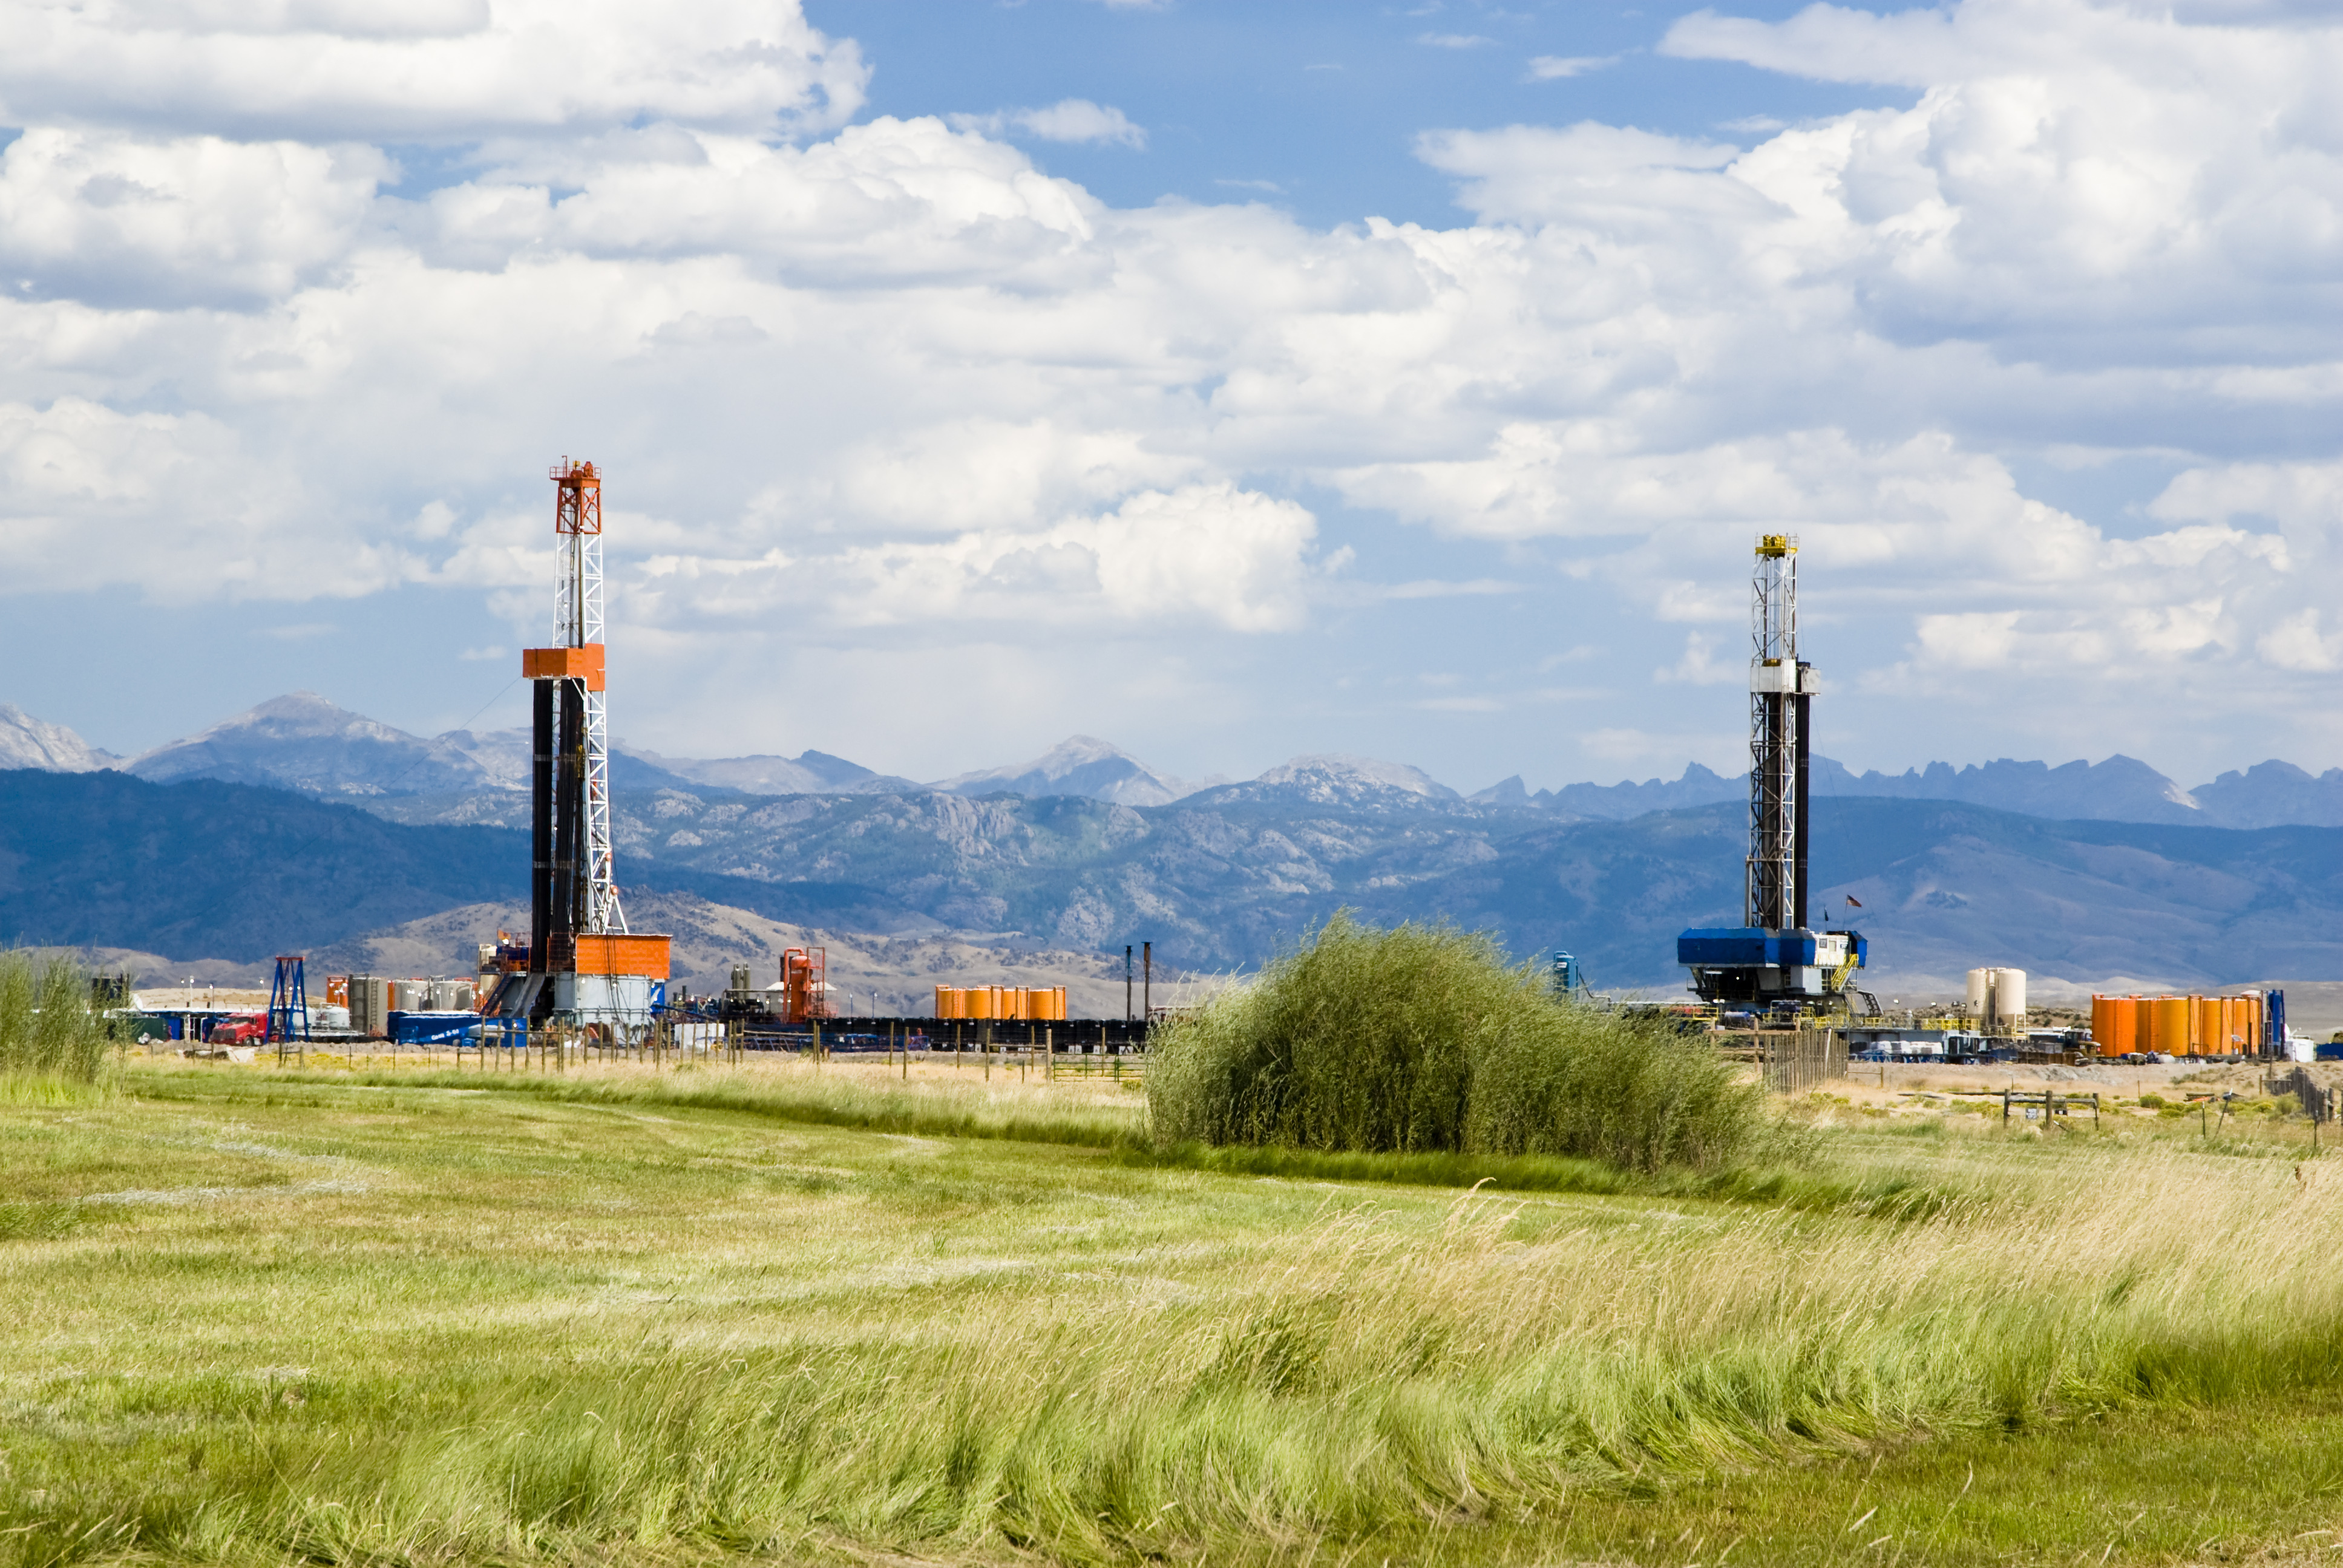 Drilling Rigs, Engines, & Fuels